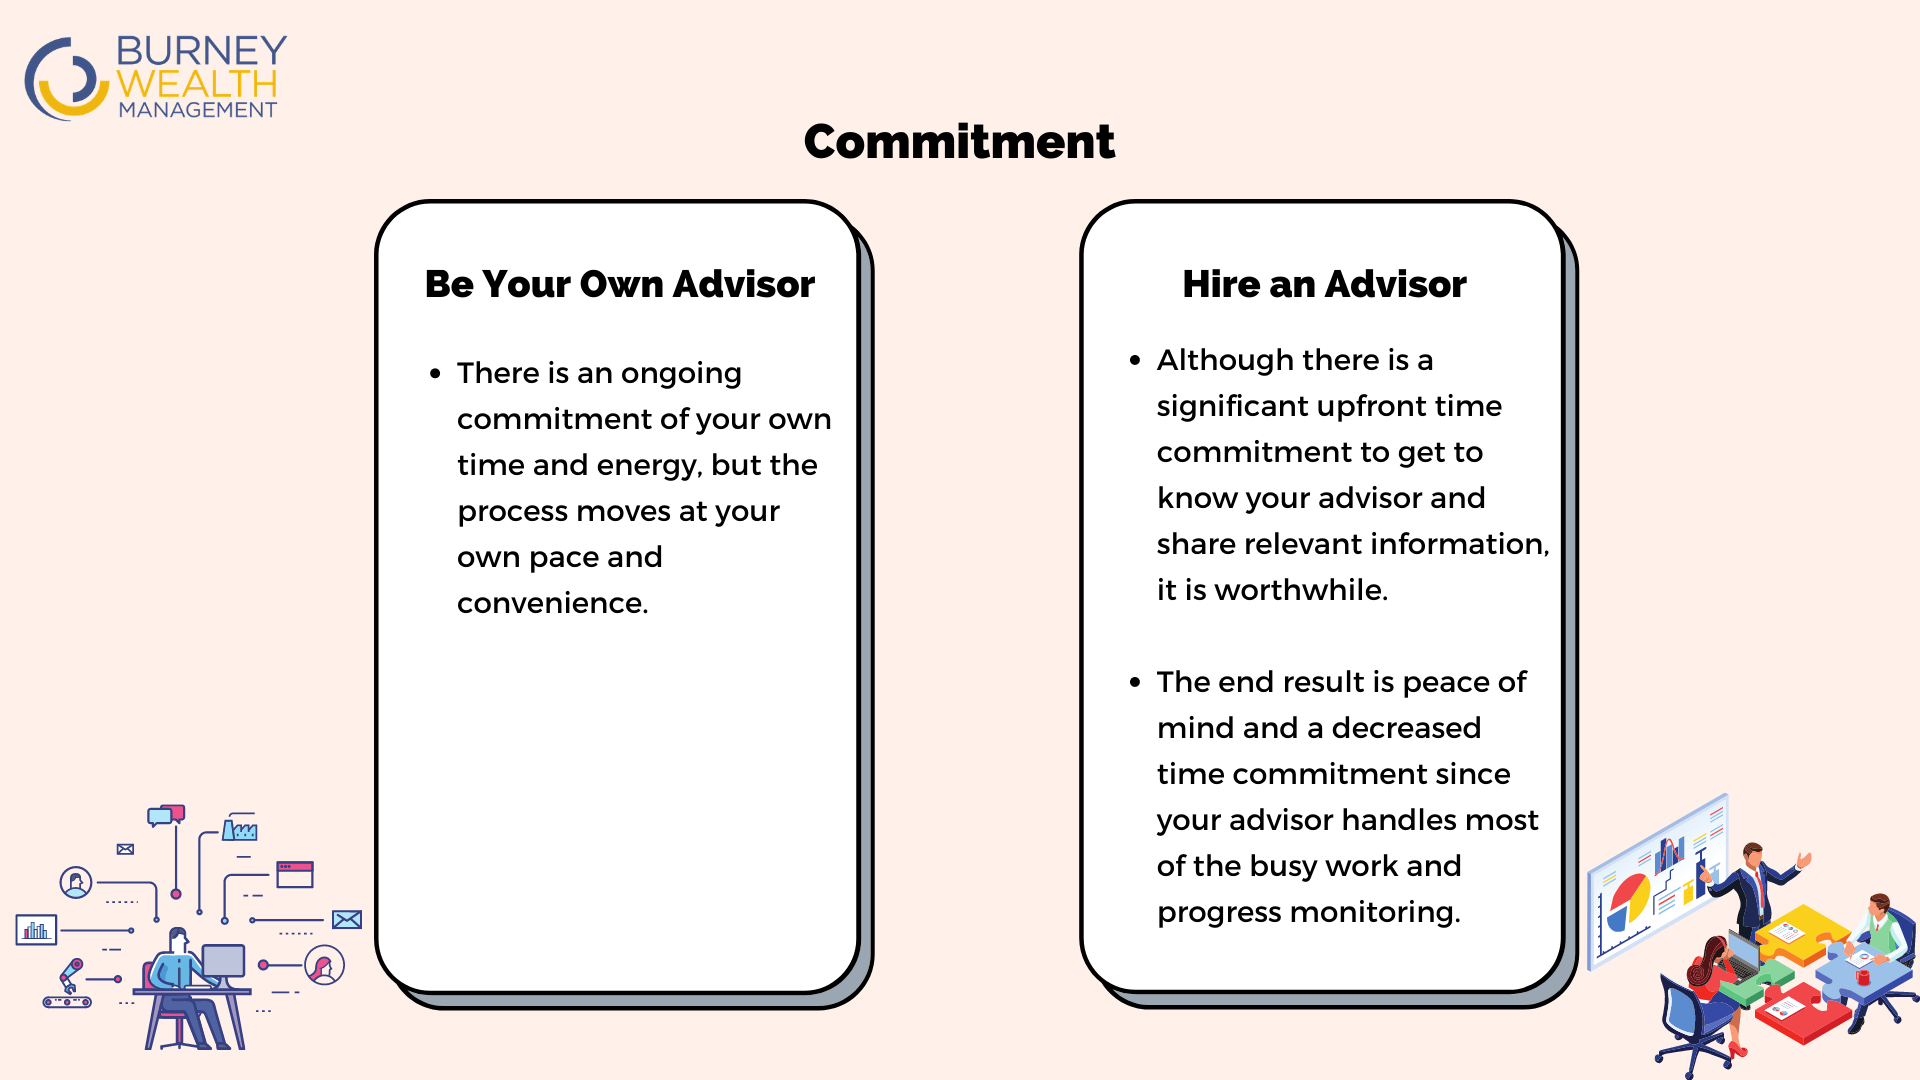 Commitment in being your own advisor and hiring an advisor